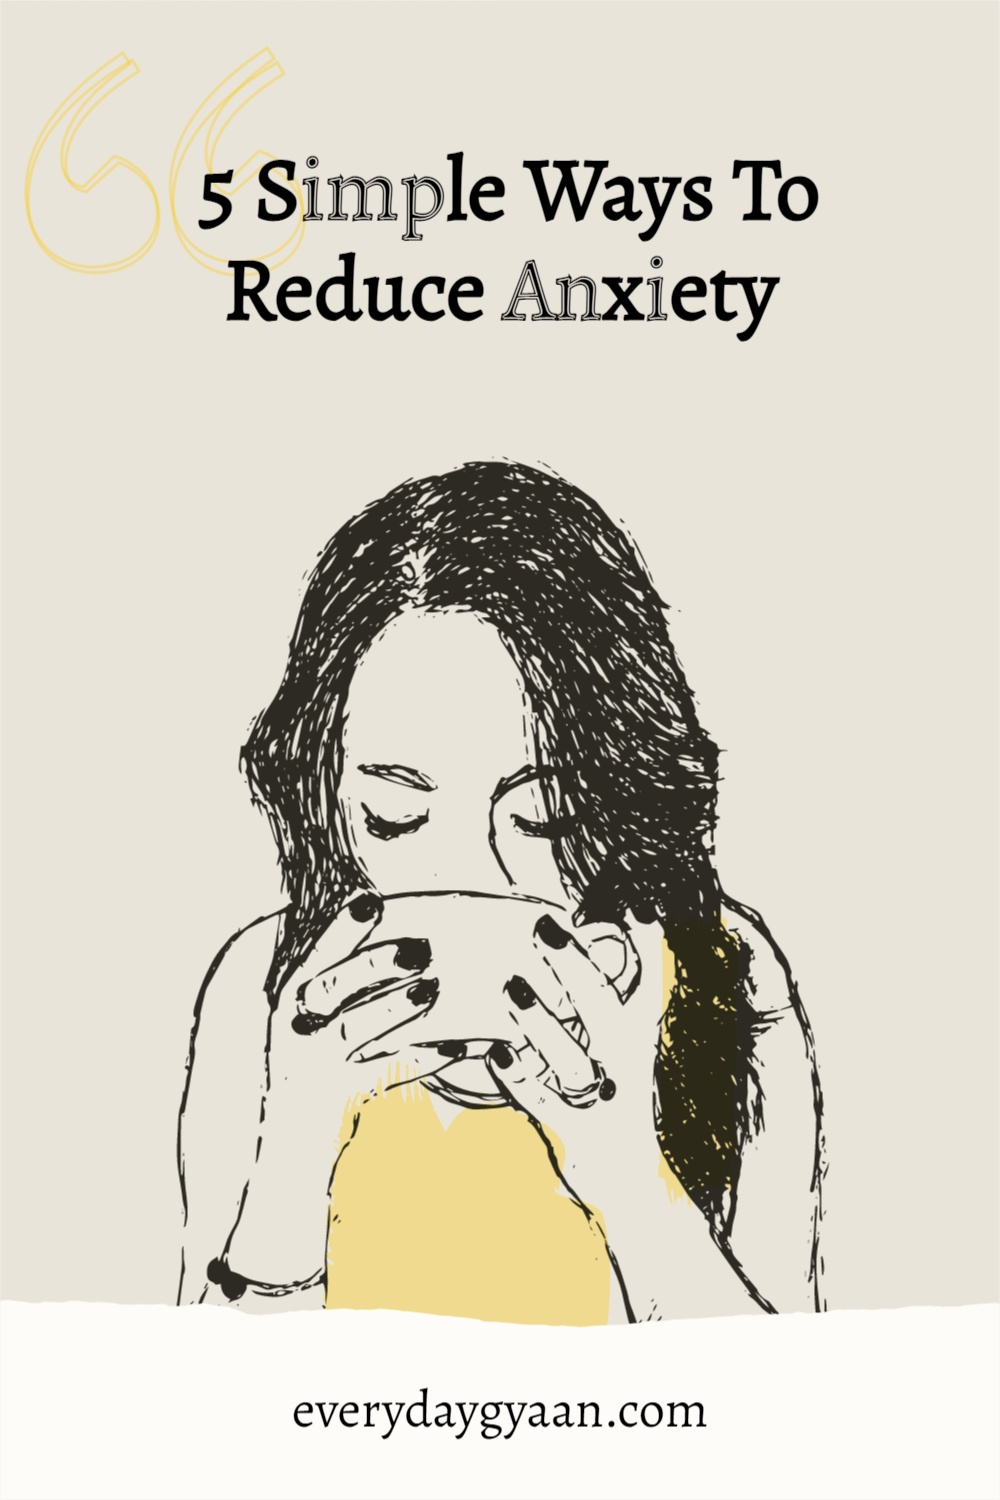 5 Simple Ways To Reduce Anxiety